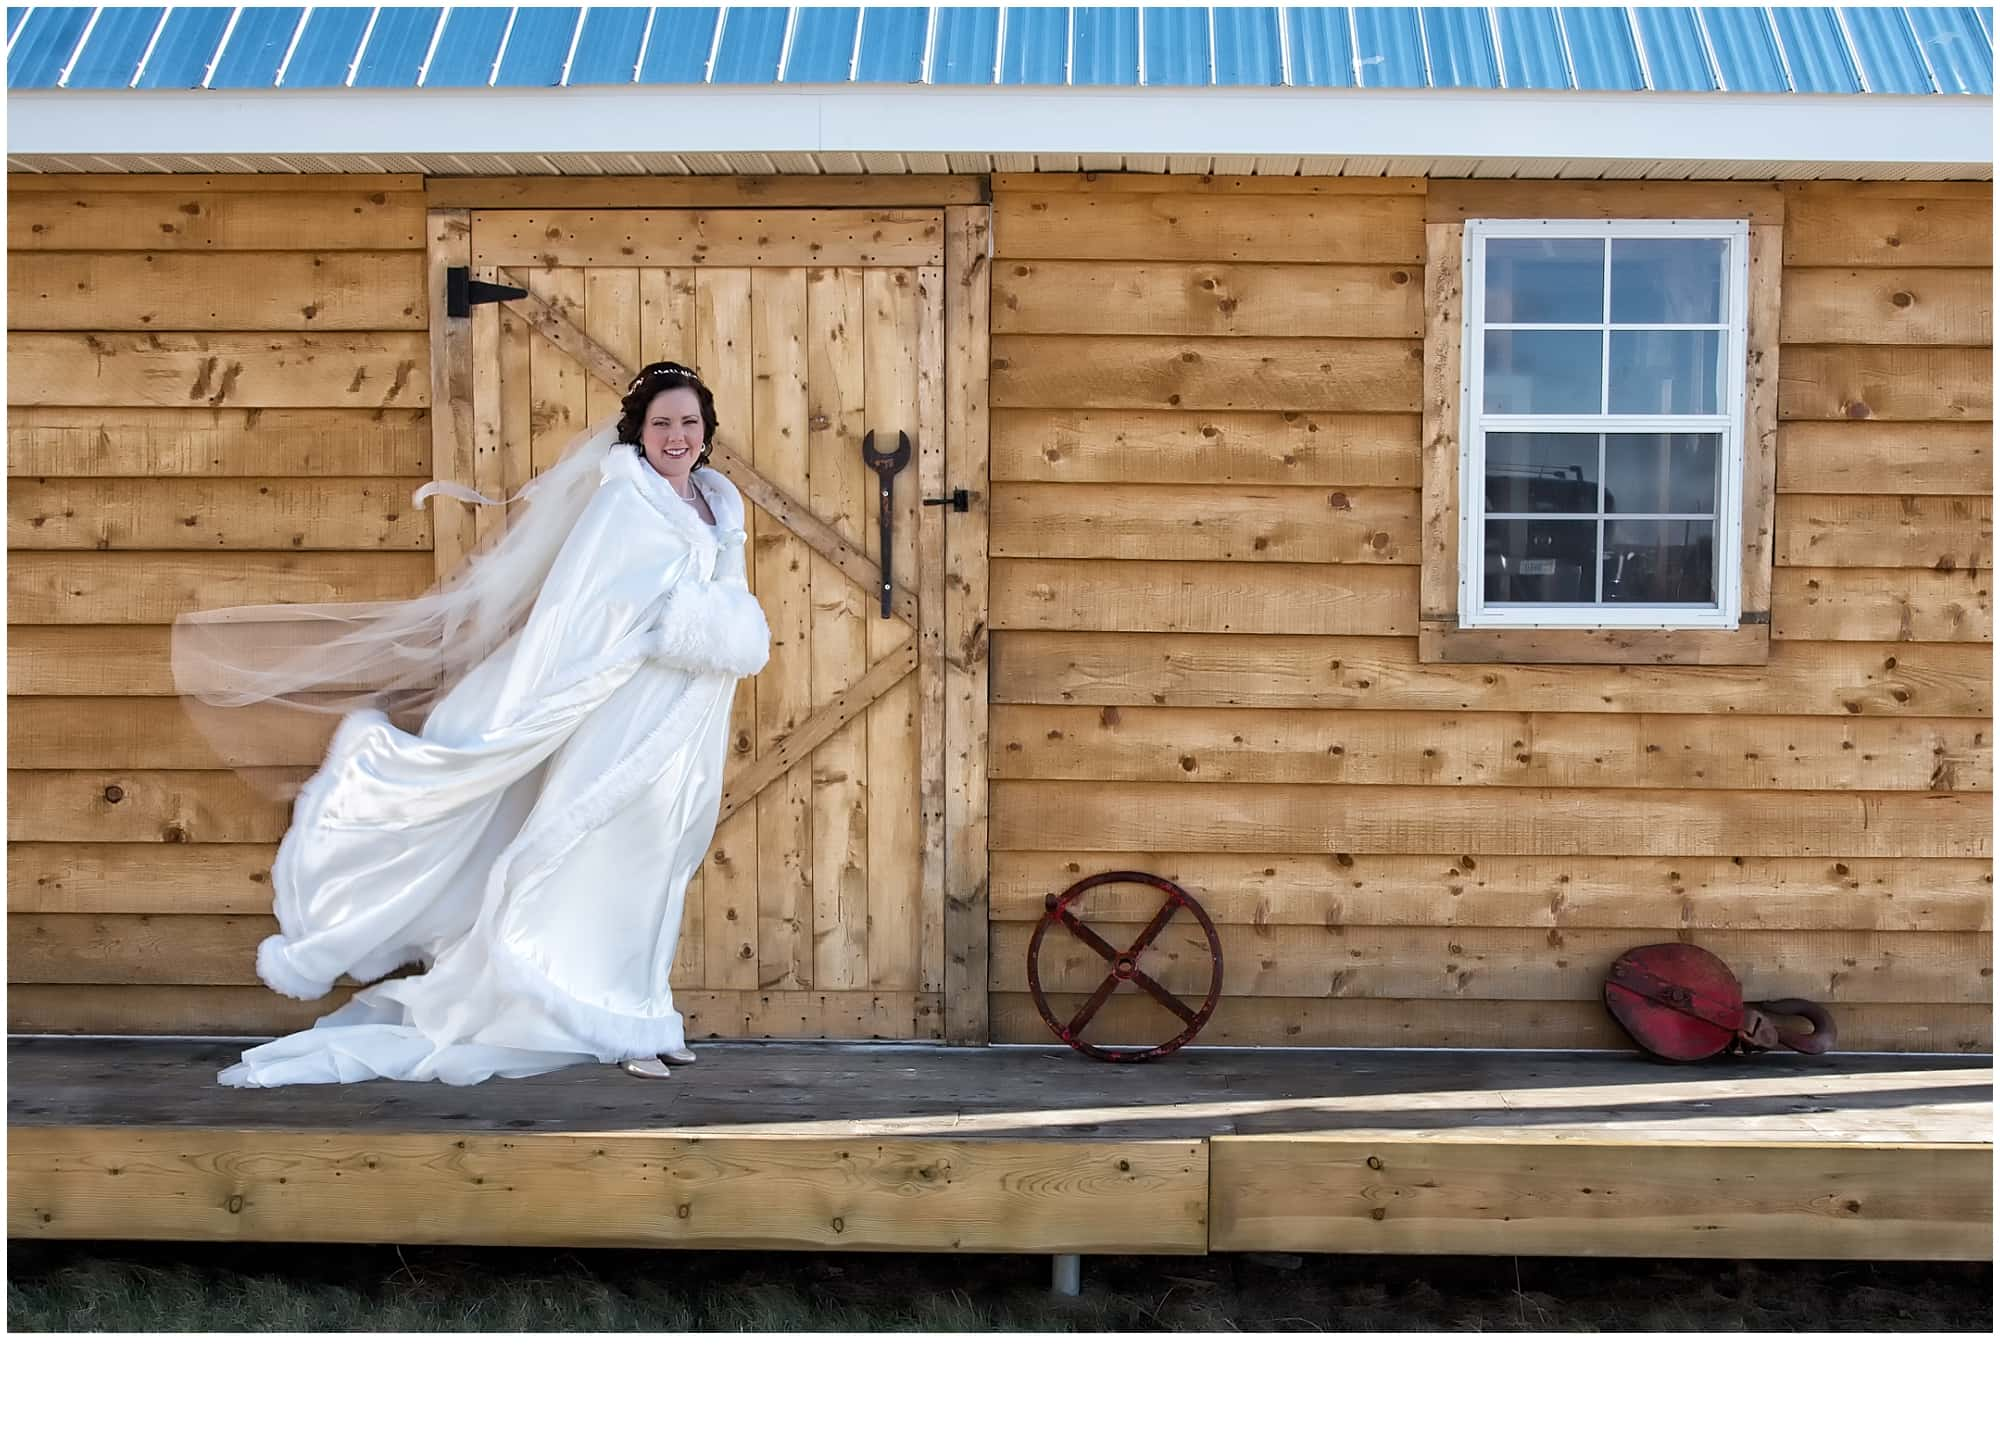 The bride ready for her winter wedding in her wedding dress and cape with winter muff.